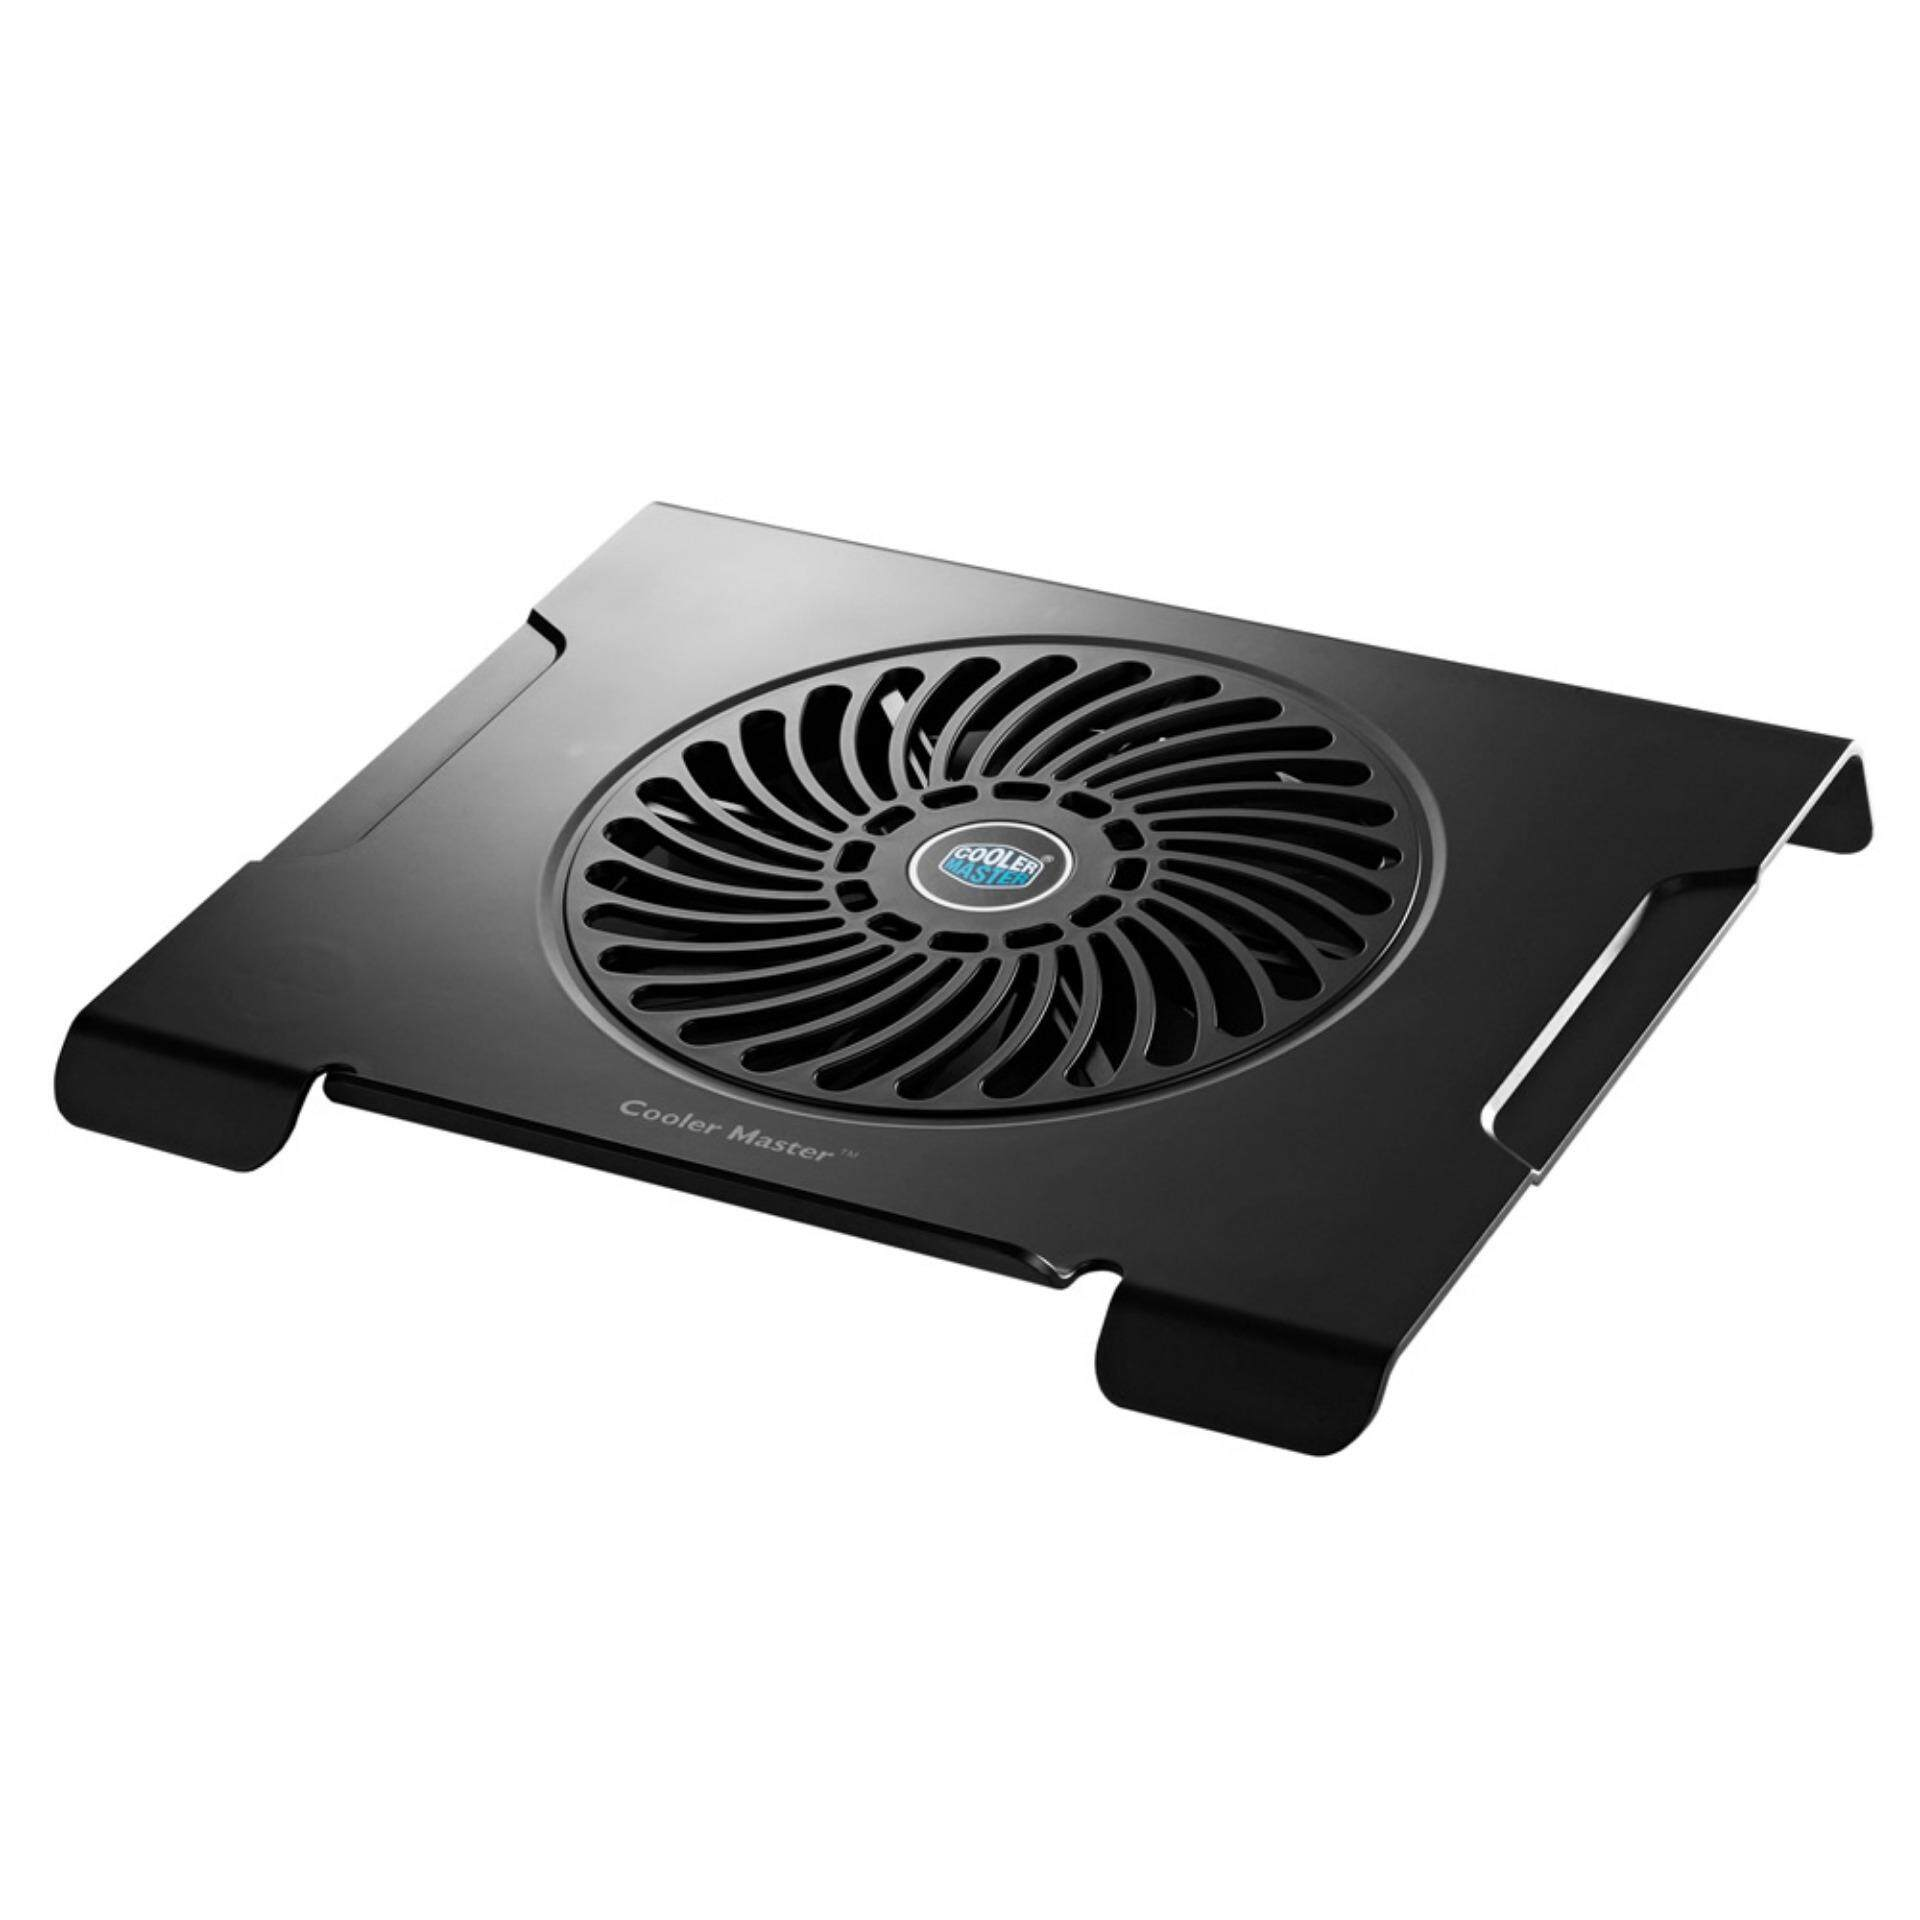 COOLER MASTER [NP24] NotePal CMC3 Silent Fan Laptop Cooling Pad For 14/15 Laptop Malaysia